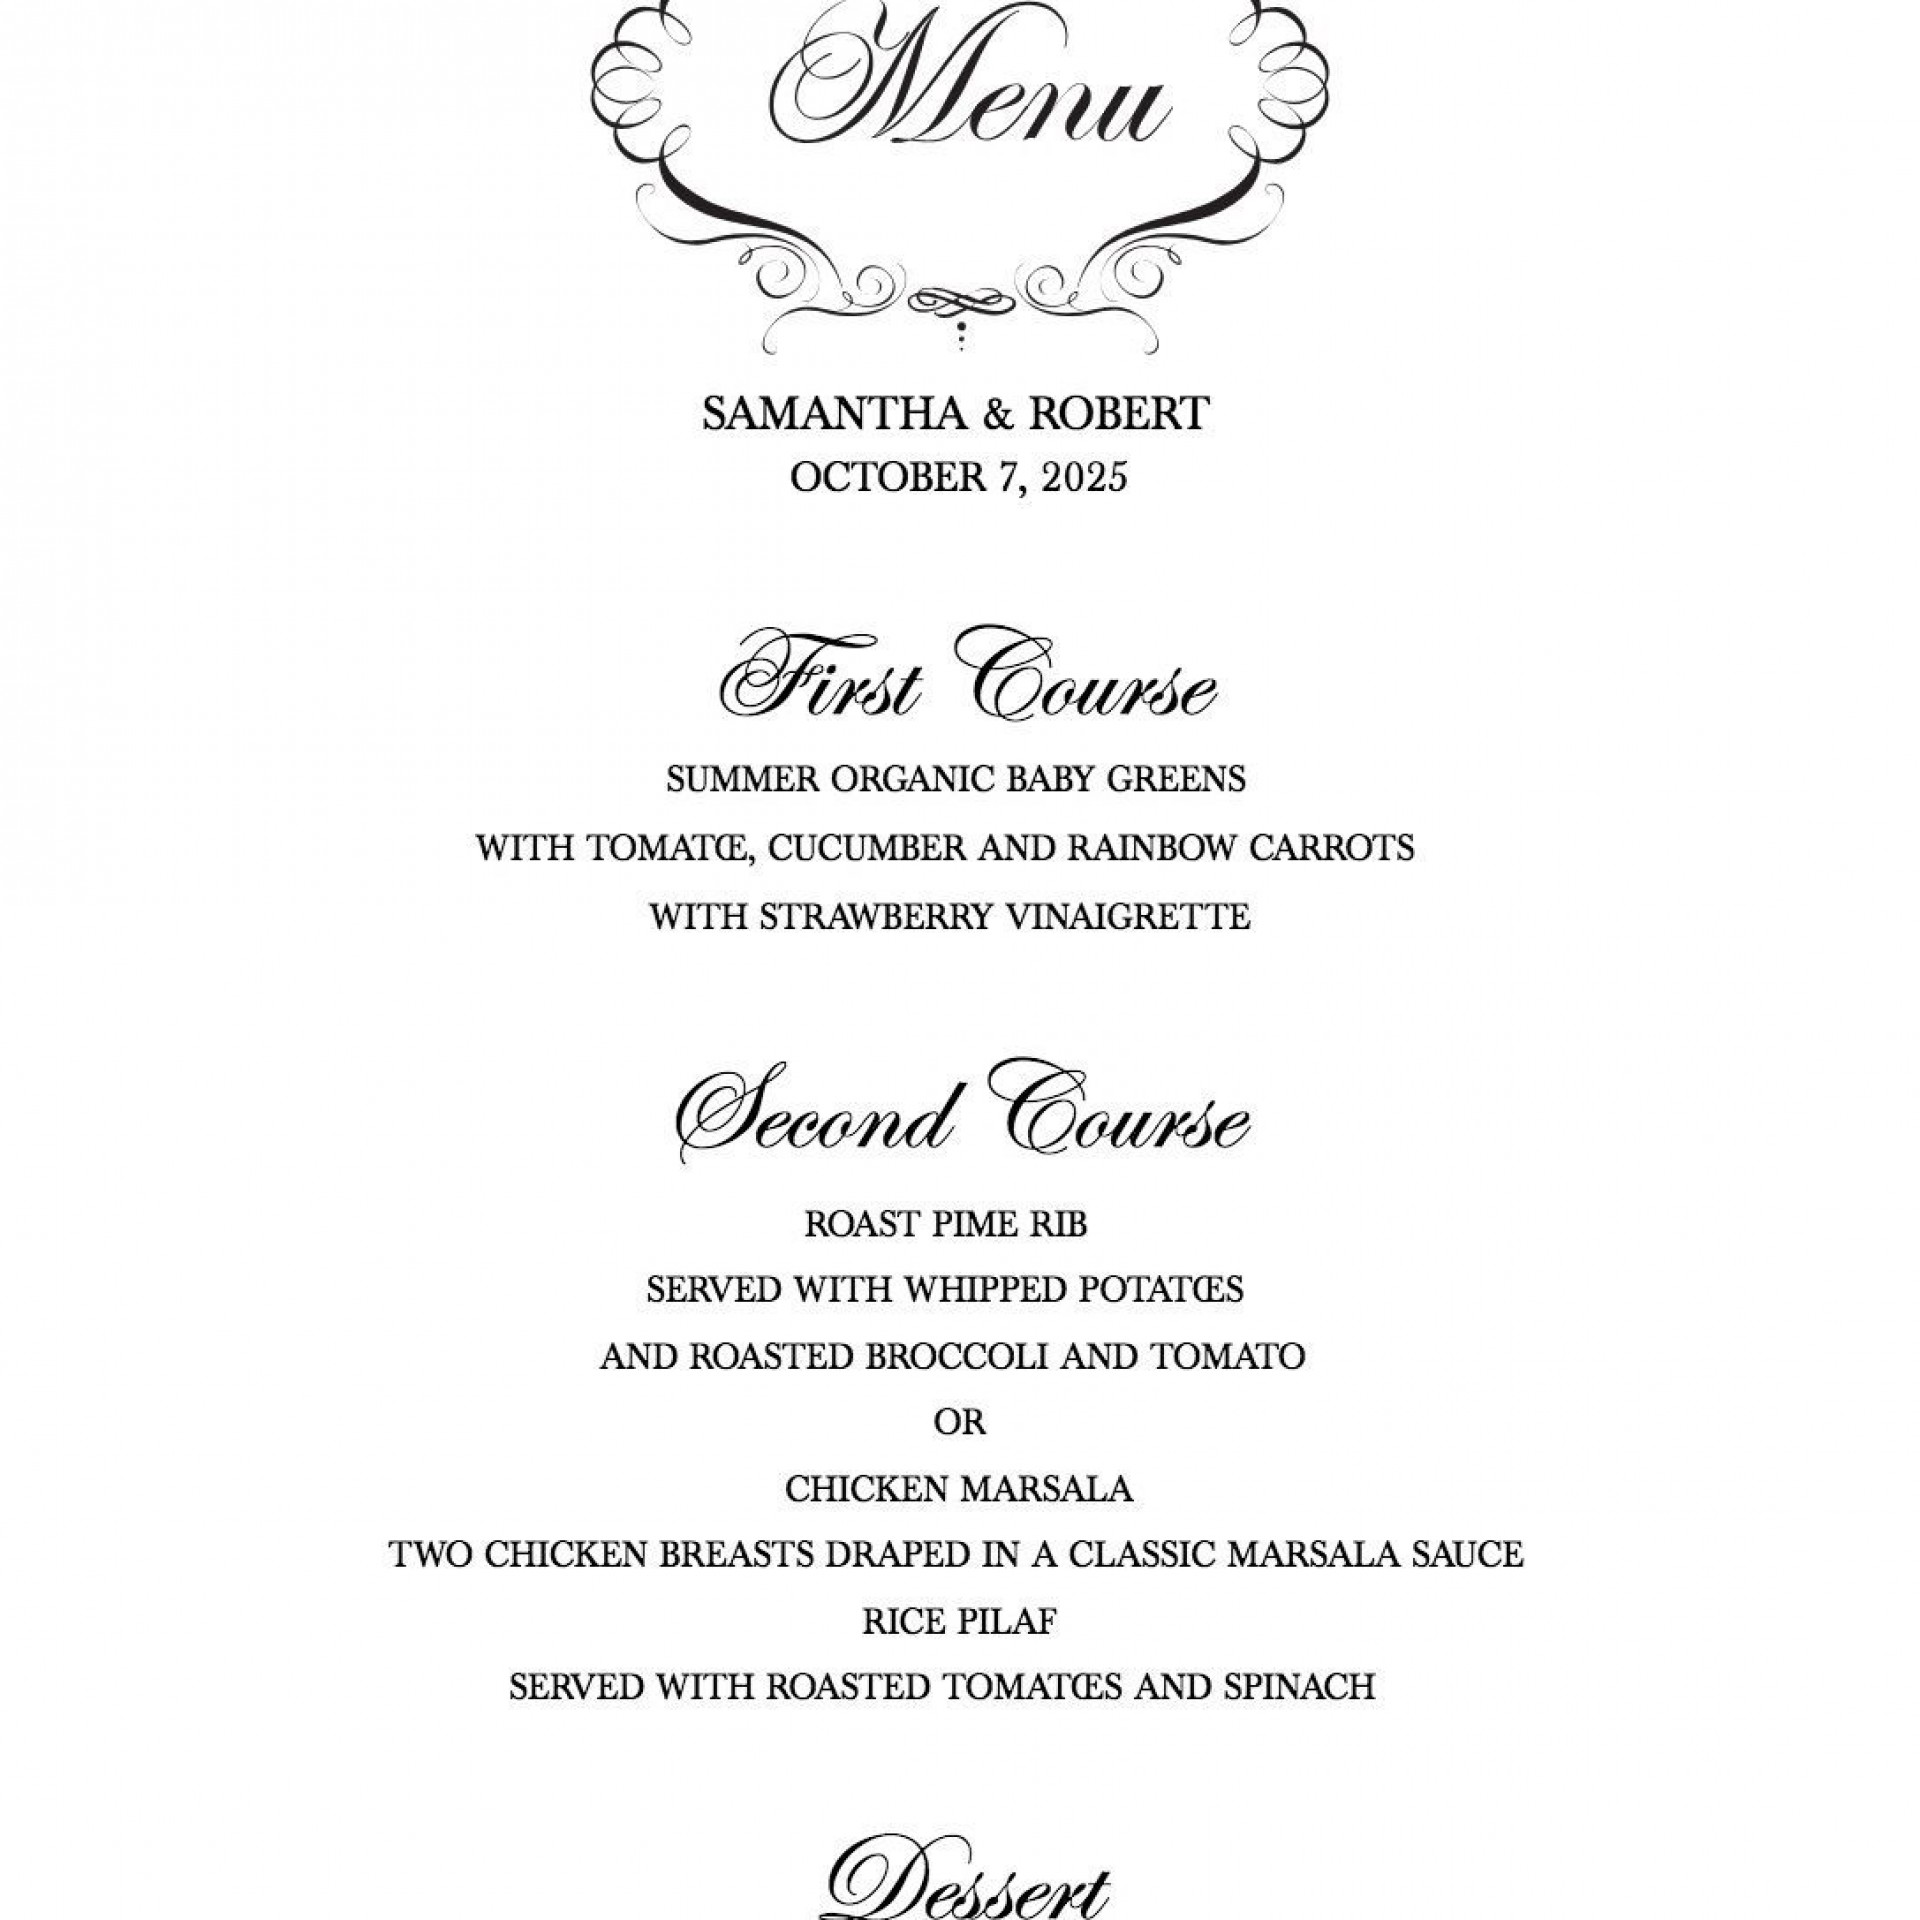 009 Magnificent Free Printable Wedding Menu Card Template High Def 1920